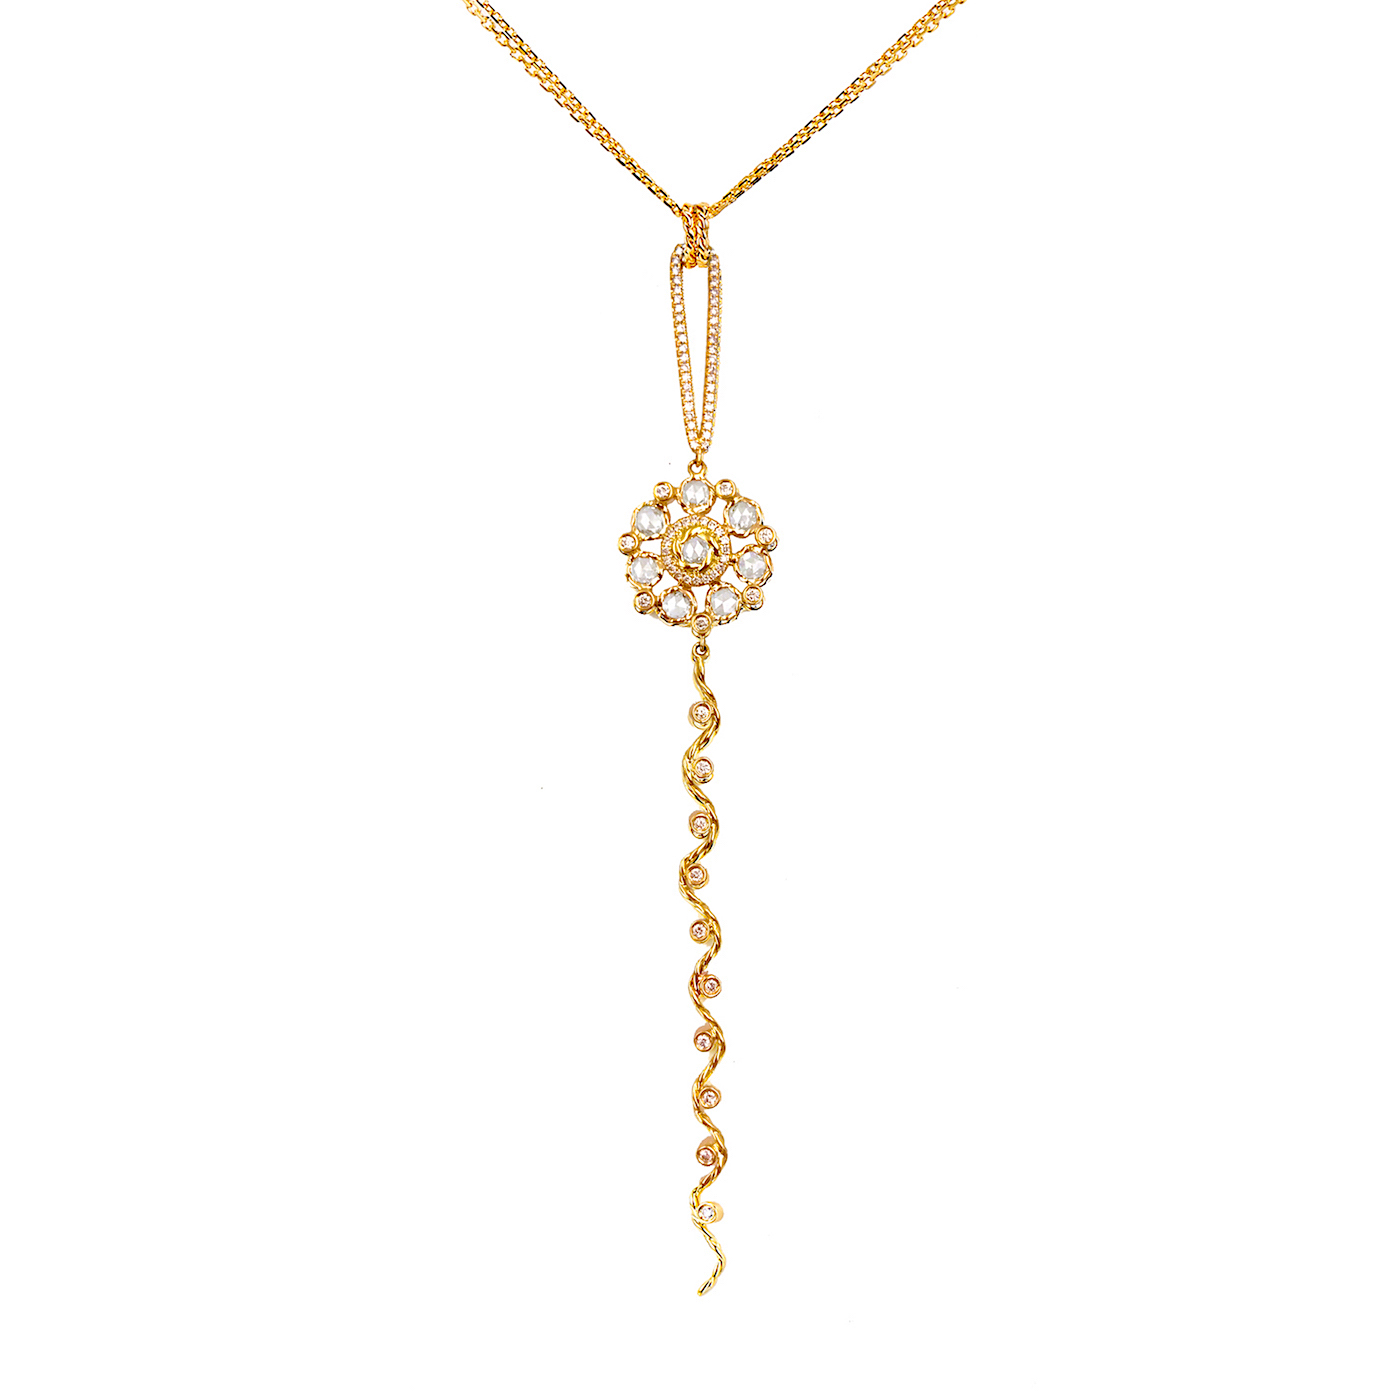 77 79-Rose-Cut-Diamond-Bouquet-Wavy-Twist-Ribbon-Pavé-Loop-Pendant-Necklace-18K-Gold-JeweLyrie_ALGPCH-06L